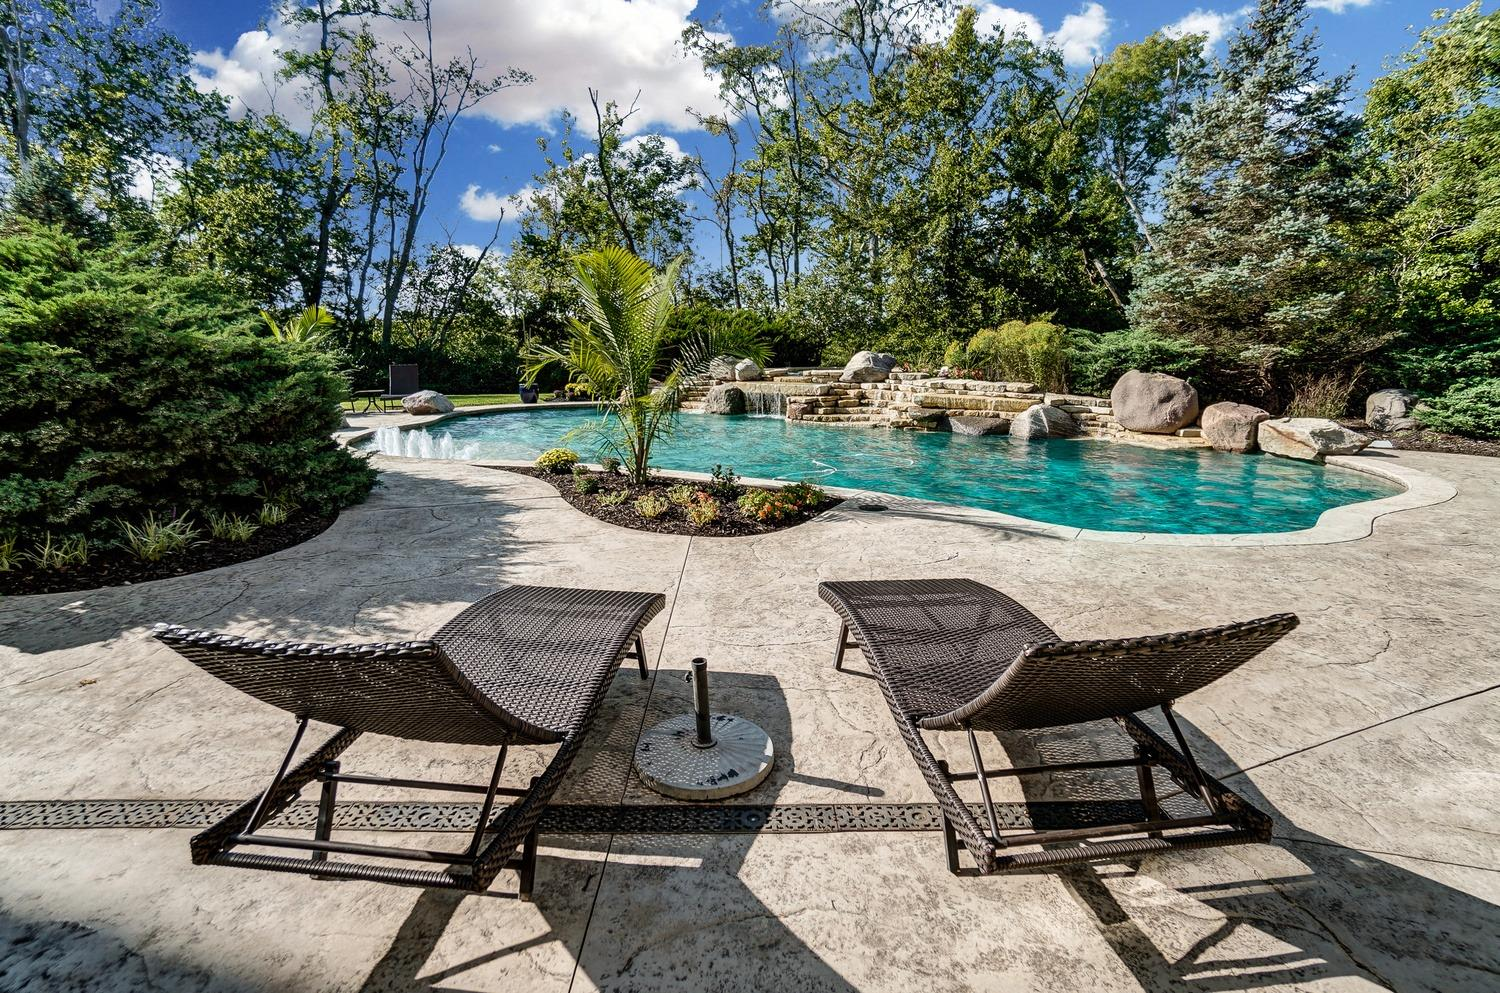 The heated, inground Gunite pool has a dramatic waterfall with an elevated inground hot tub with waterfalls.  There are water jets spraying up at the shallow entry into the pool and a deep end suitable for diving.